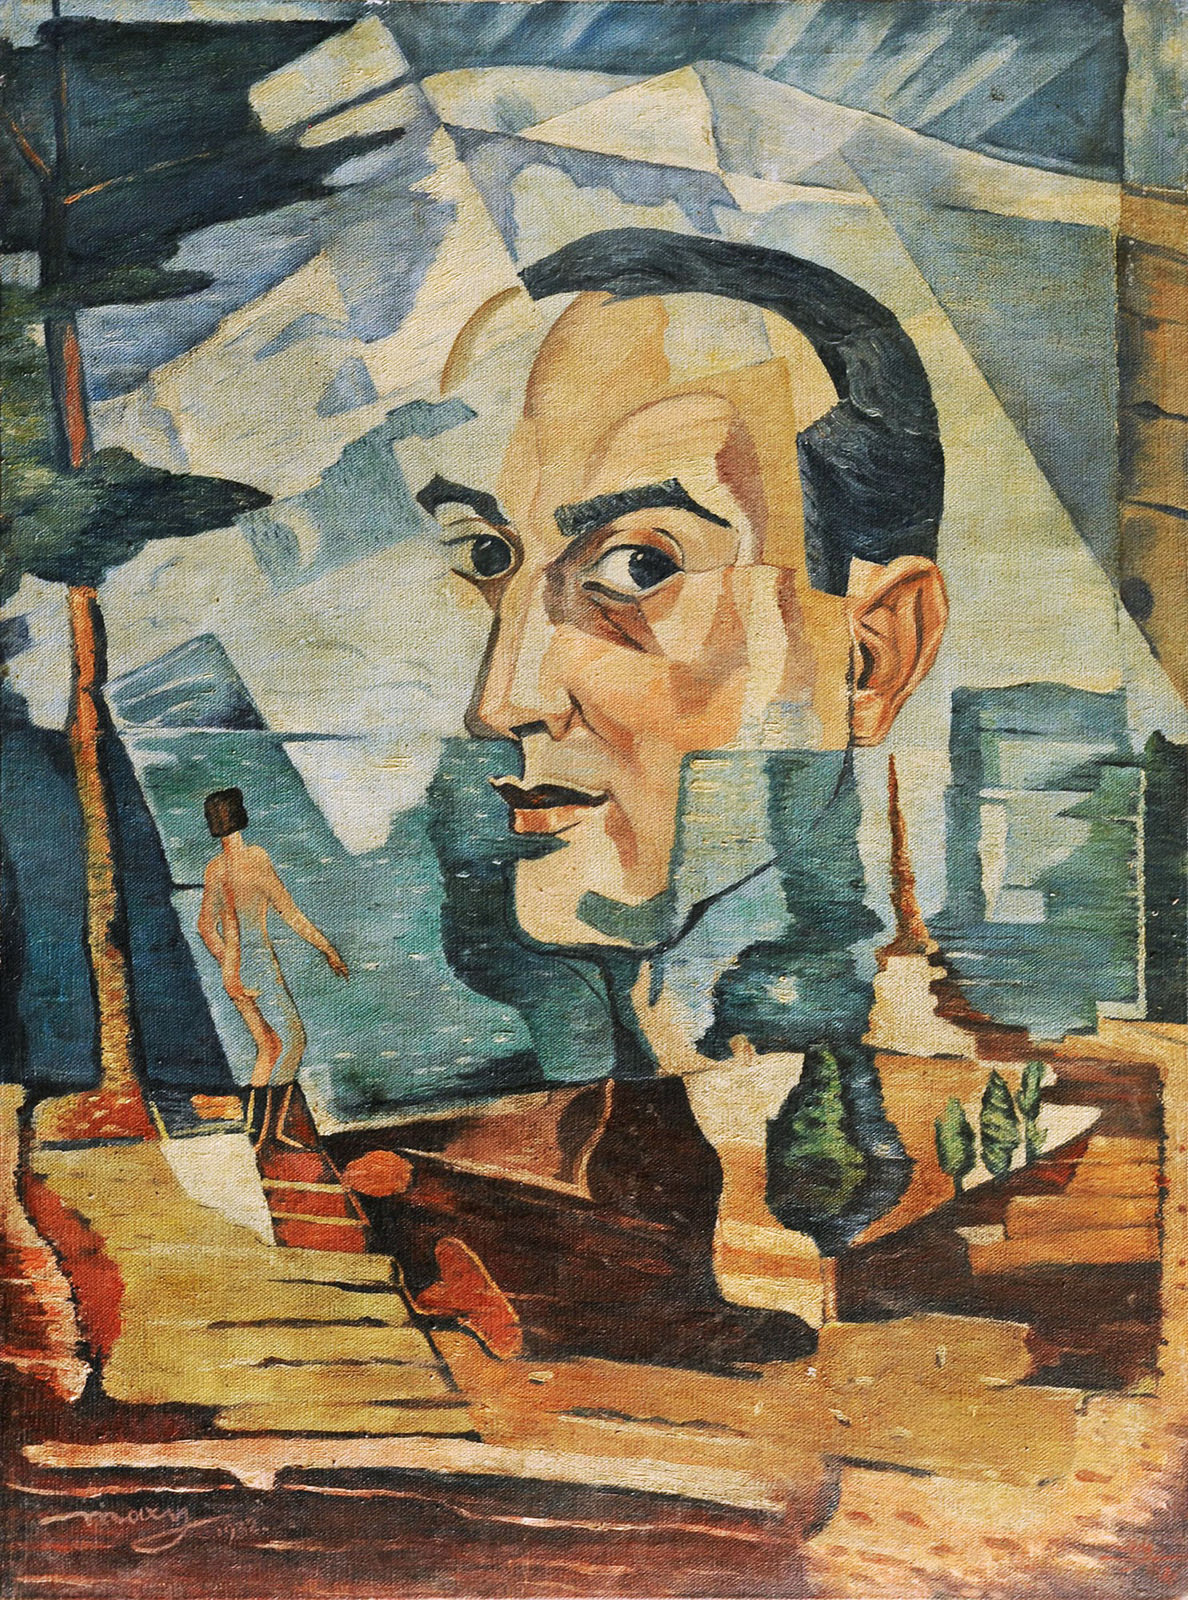 Self Portrait, Max Herman Maxy, Private Collection, Public Domain Mark